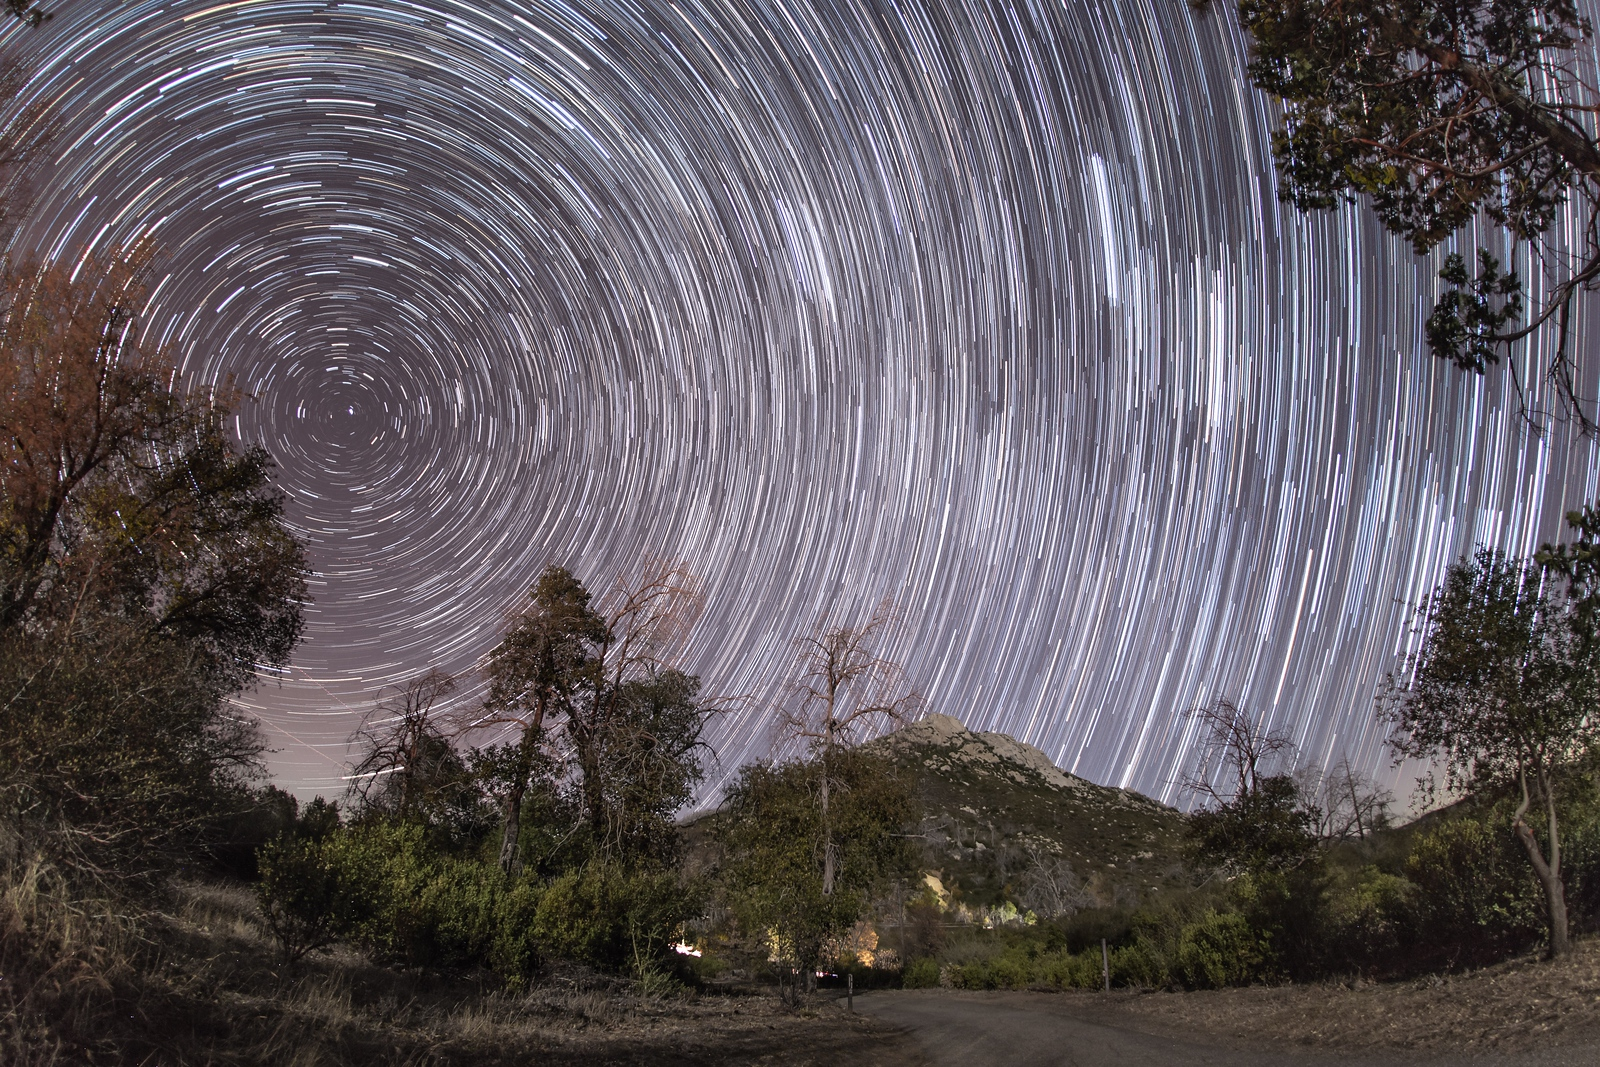 More star trails at Cuyamaca Rancho State Park